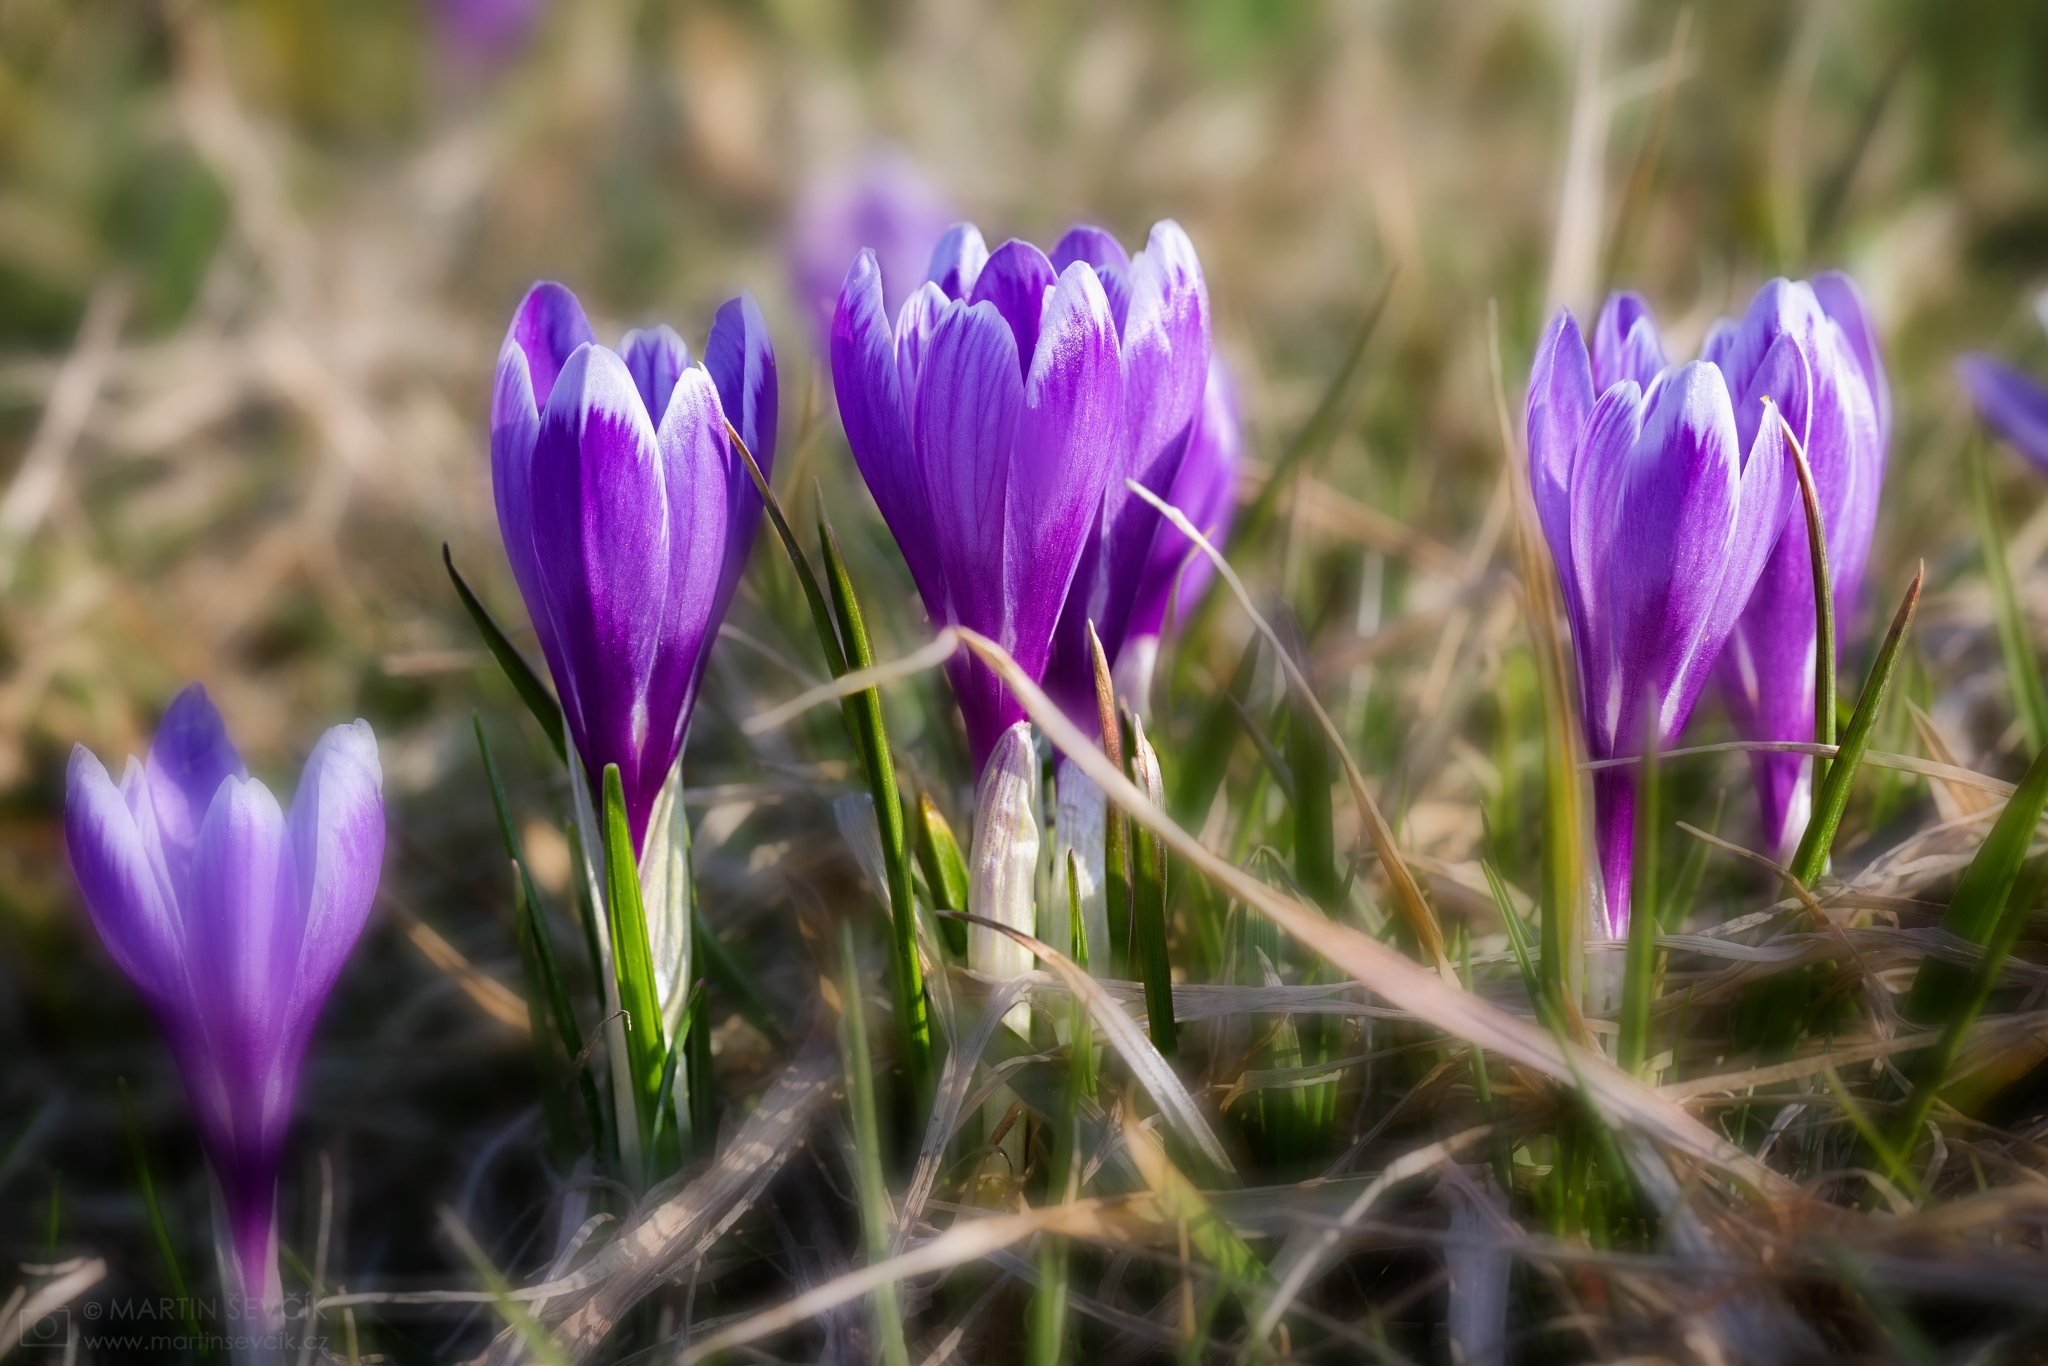 Spring flowering meadow with saffron